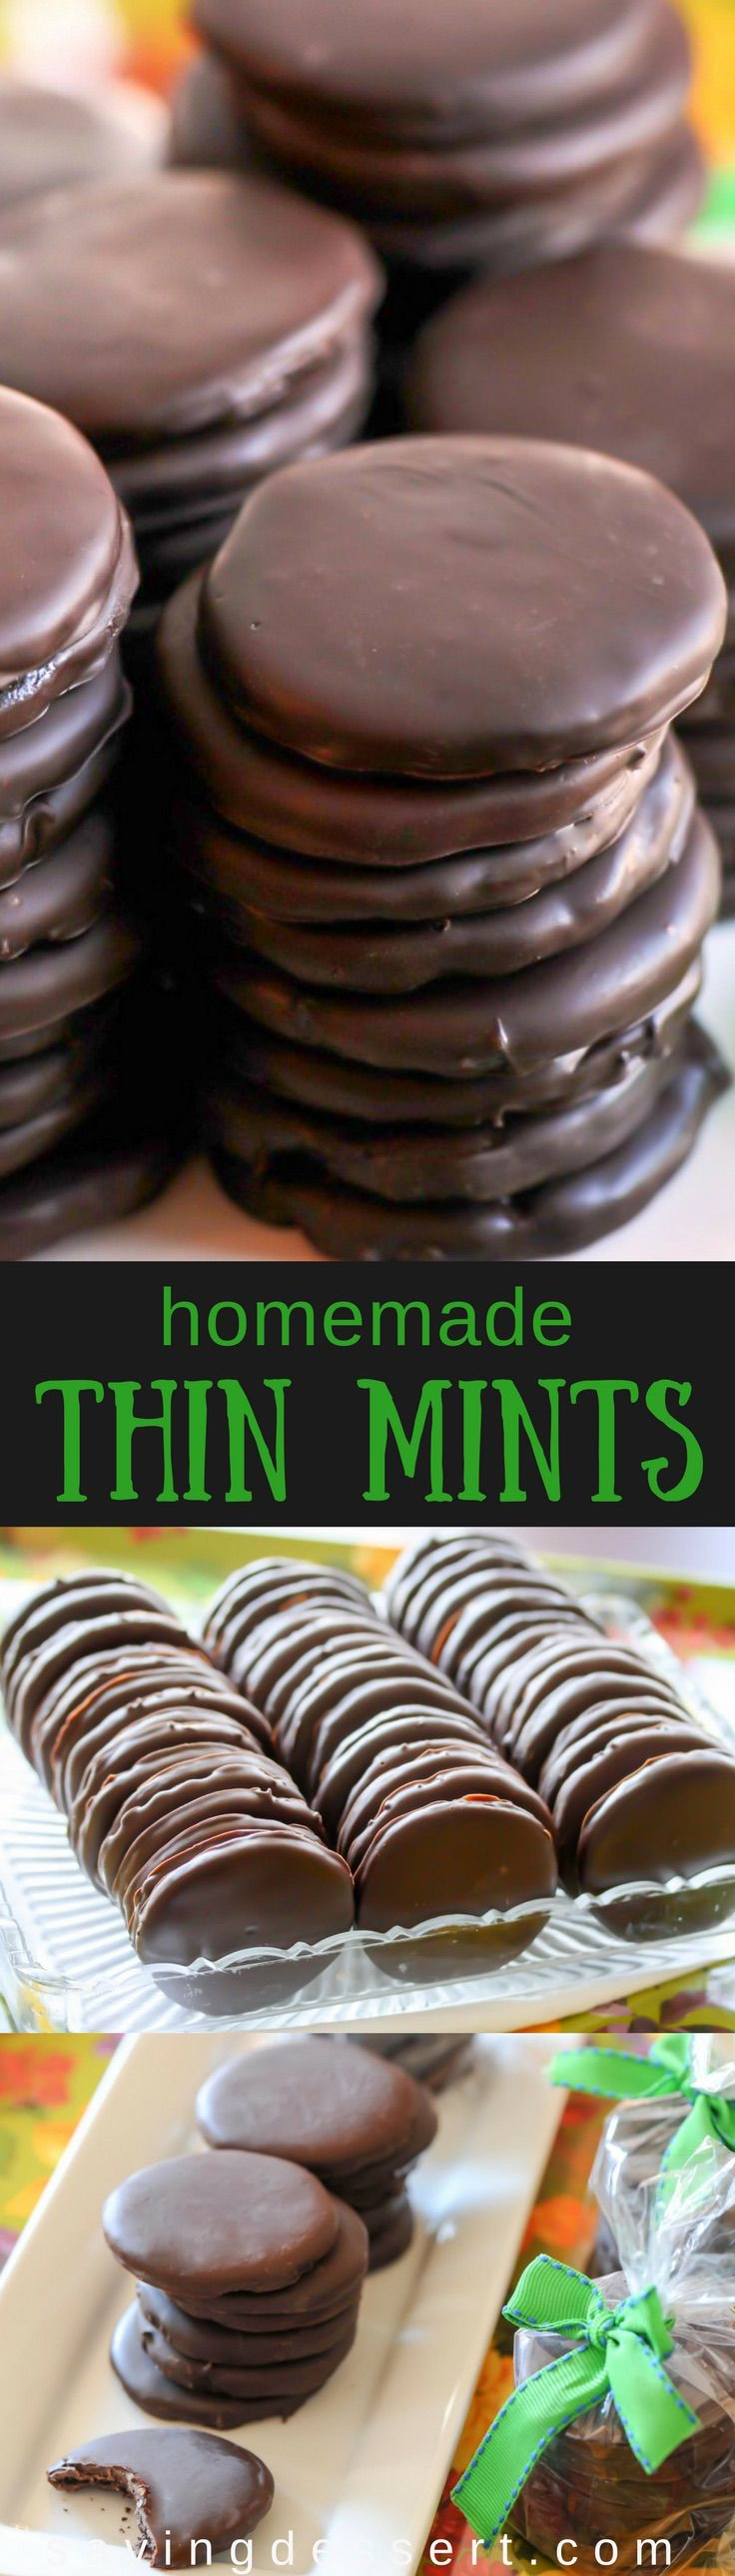 Homemade Copycat Thin Mint Cookies with a deep, dark chocolate cookie coated in a thick layer of minty chocolate. Don't wait for a Girl Scout to stop by your house - keep a batch in the freezer year round!